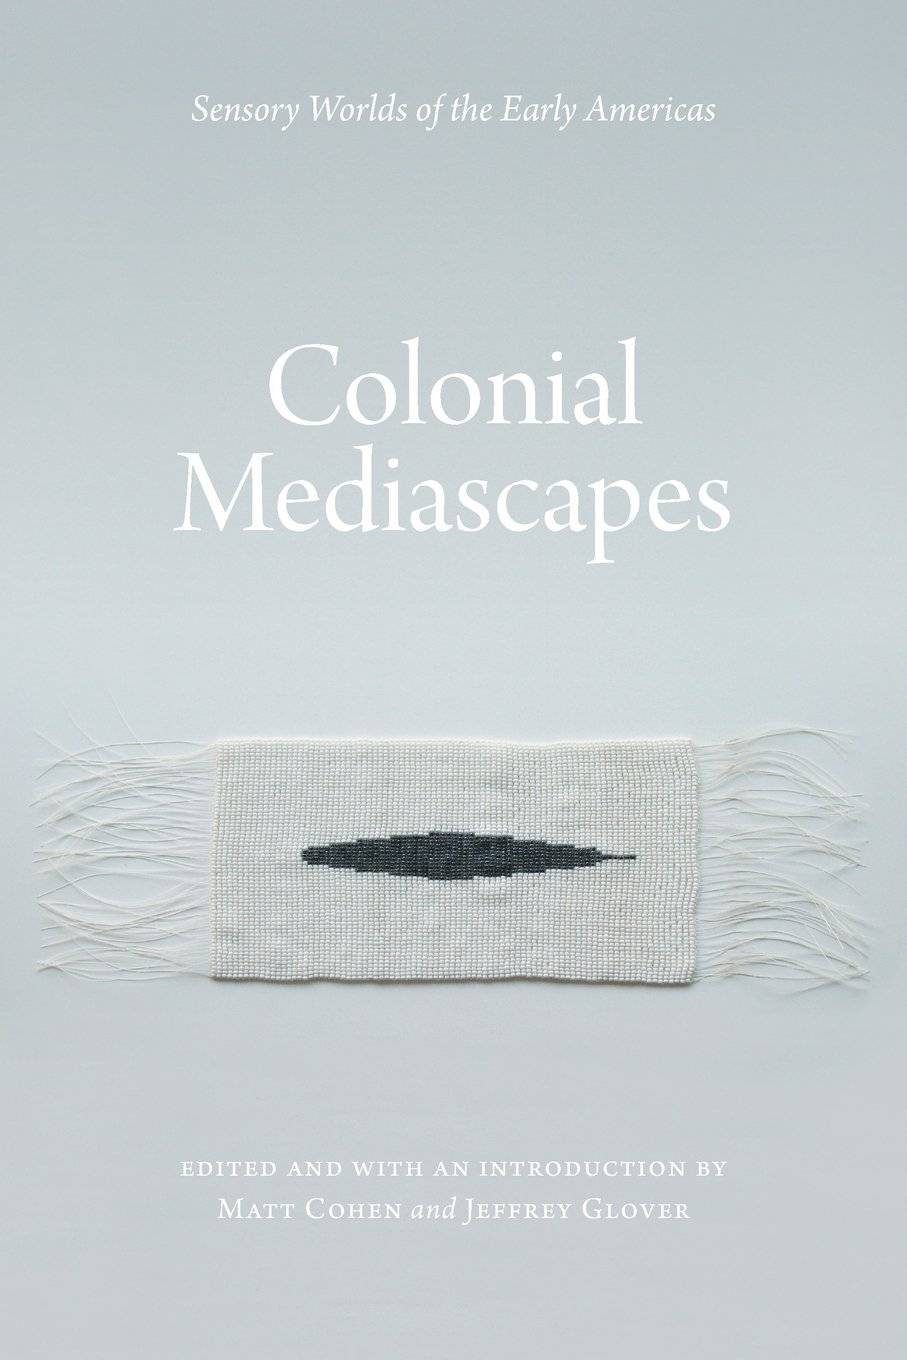 Cover image for Colonial Mediascapes: Sensory Worlds of the Early Americas